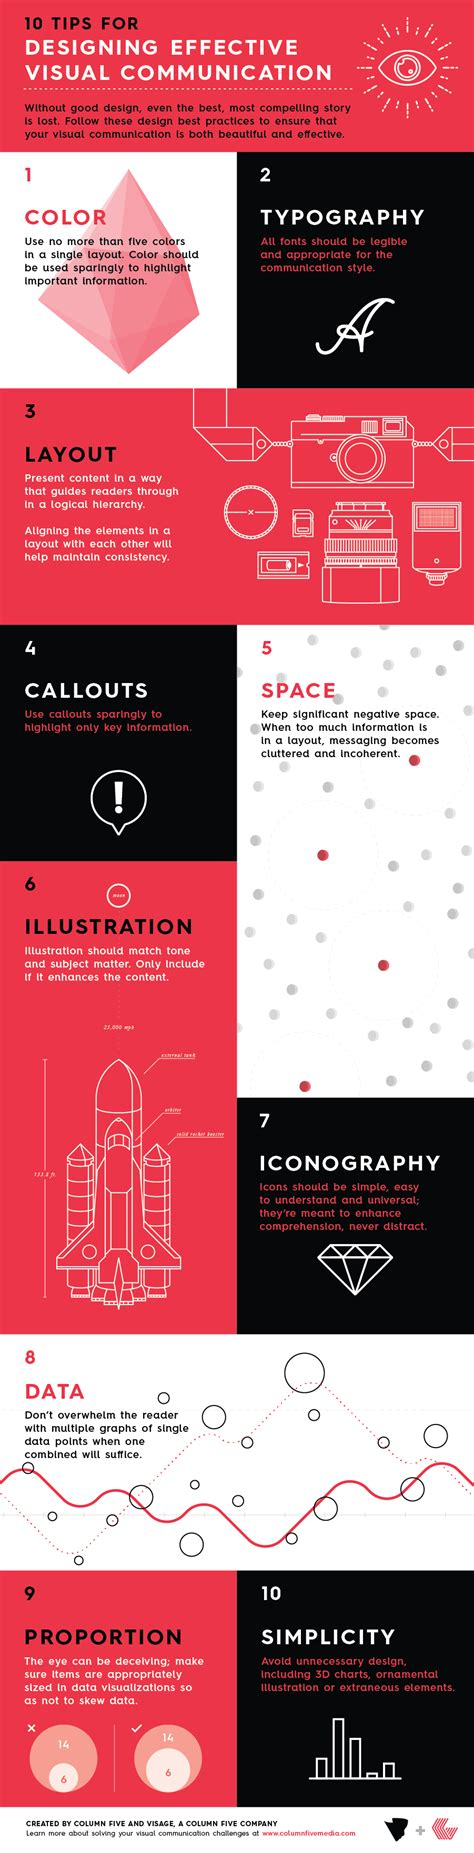 design of visual communication designing effective visual communication tips